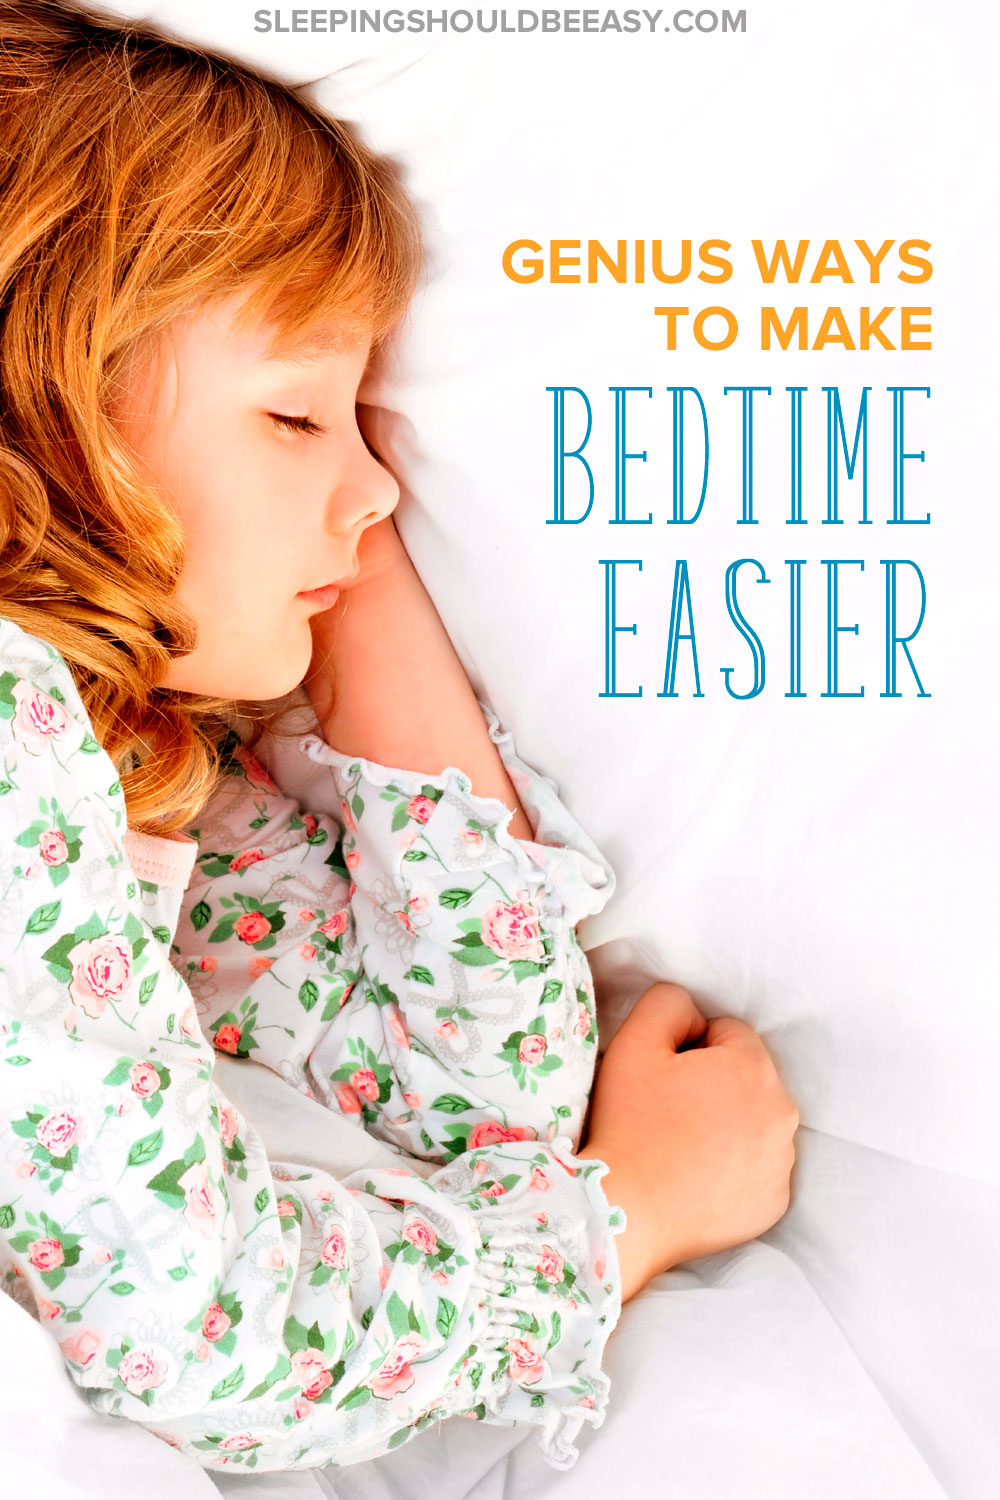 Practical tips on how to make bedtime easier, end bedtime battles and improve your evenings. Check out the tips for an easier time tonight!